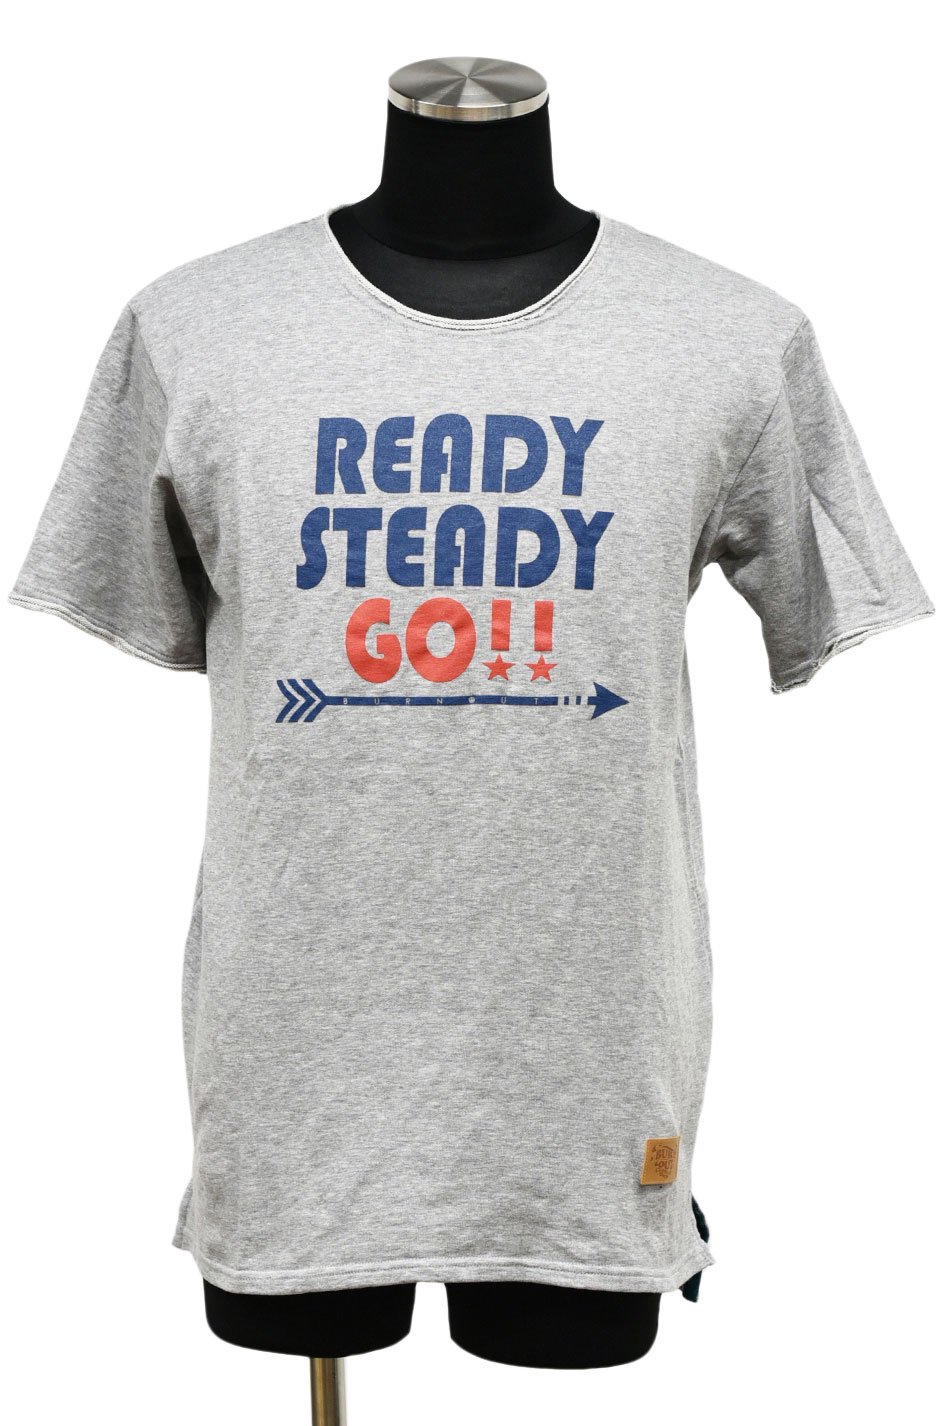 BURNOUT(バーンアウト )【READY STEADY GO !! 】ショートスリーブカットソー / ライトグレー<img class='new_mark_img2' src='https://img.shop-pro.jp/img/new/icons5.gif' style='border:none;display:inline;margin:0px;padding:0px;width:auto;' />